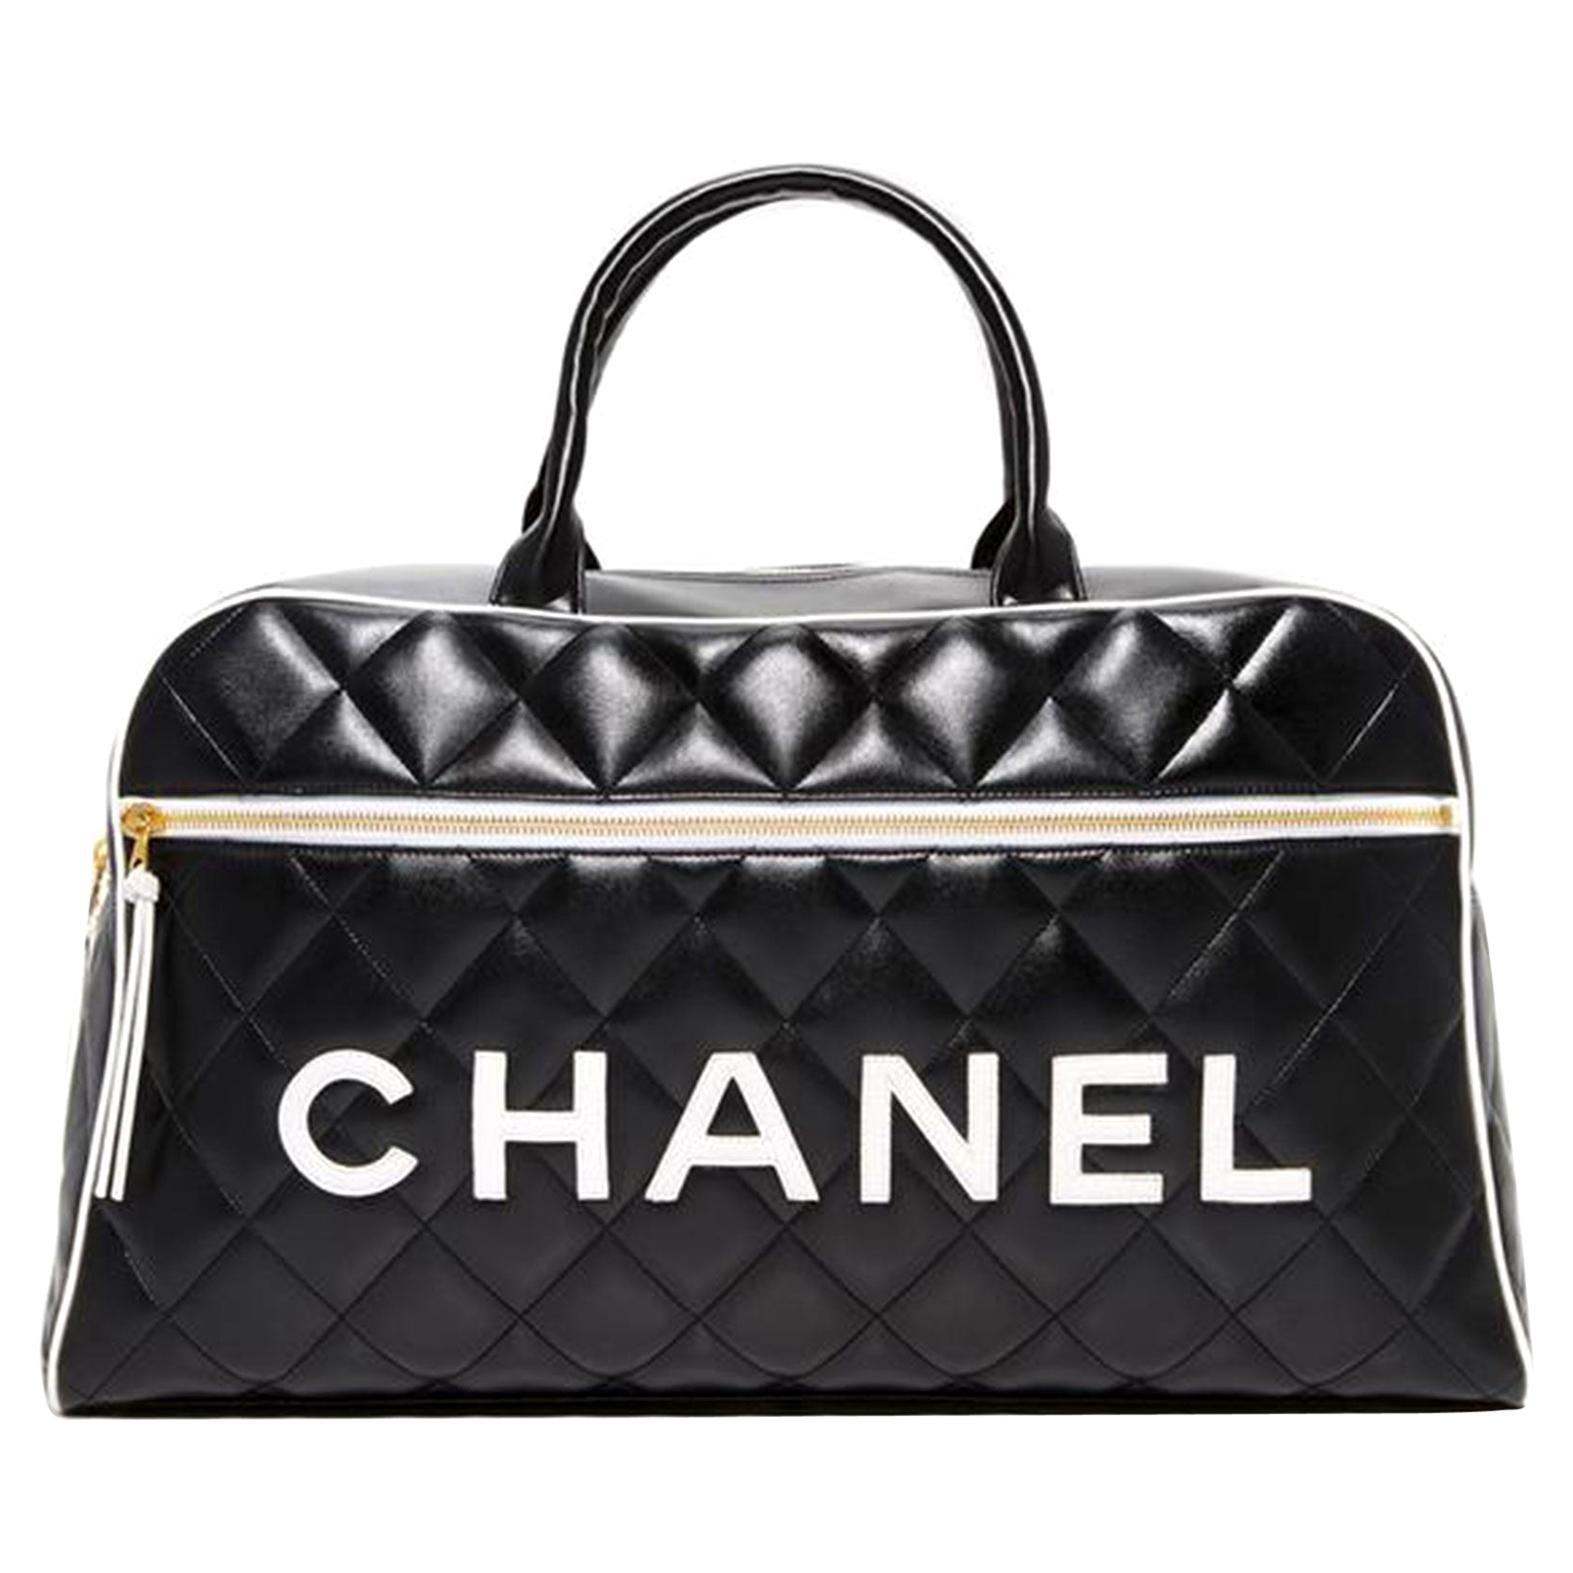 Chanel Limited Edition Vintage Duffel Tote Black and White Leather Weekend Bag